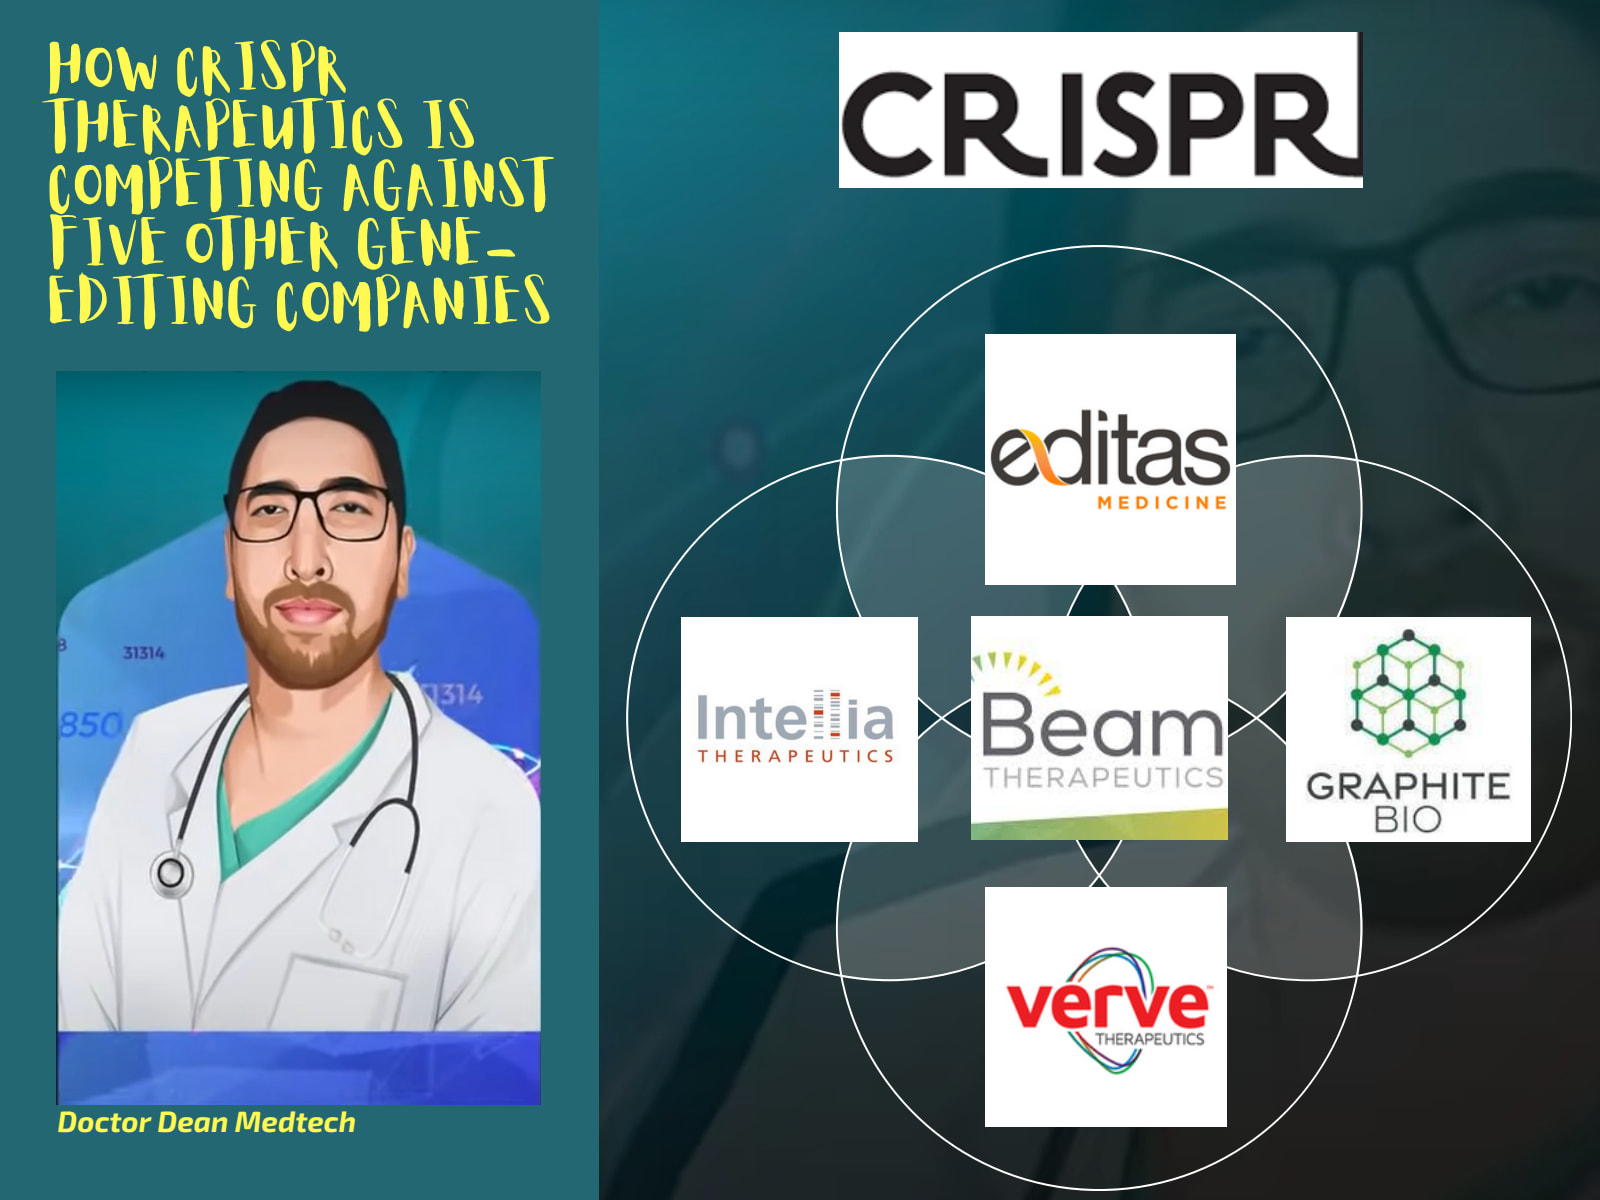 How CRISPR Therapeutics is Competing Against Five Other Gene-Editing Companies